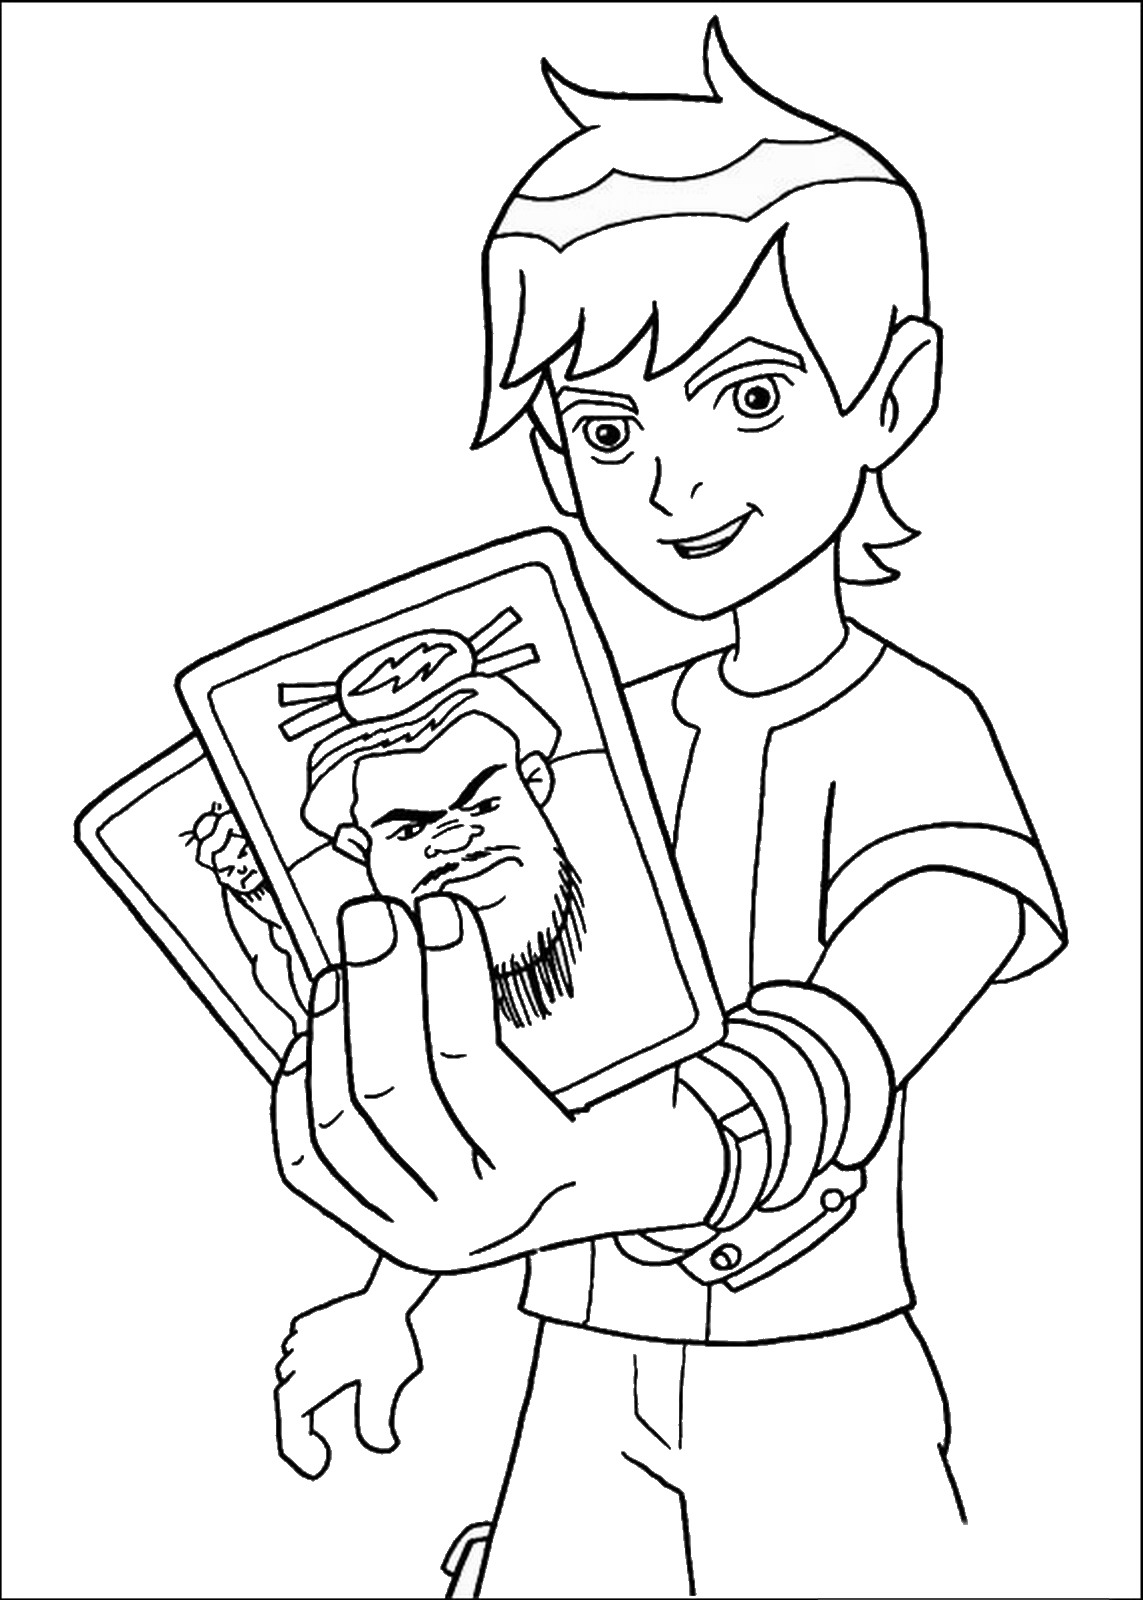 Ben 10 Coloring Pages At Getdrawings Com Free For Personal Use Ben